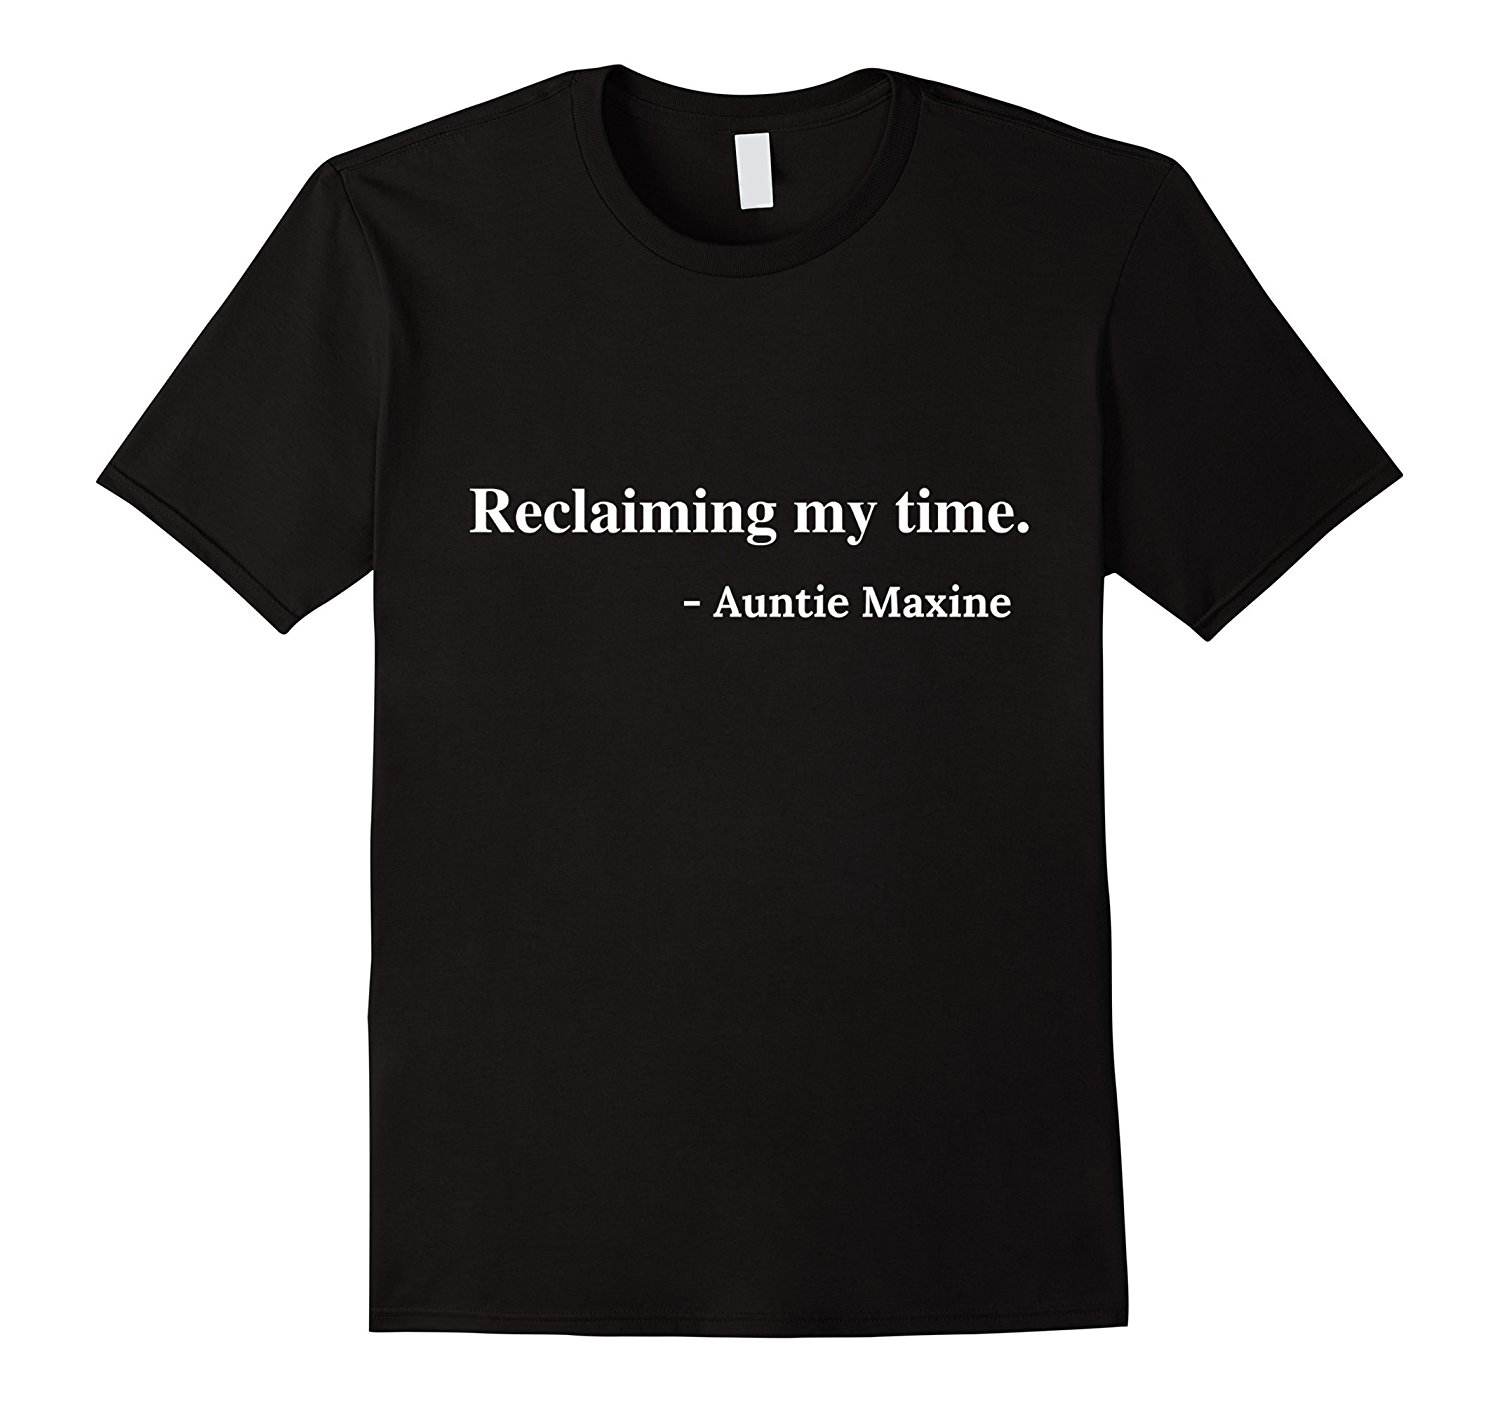 Reclaiming My Time Auntie Maxine Waters T-Shirt MenS T-Shirts Summer Style Fashion Swag Men Casual Short Sleeve Novelty